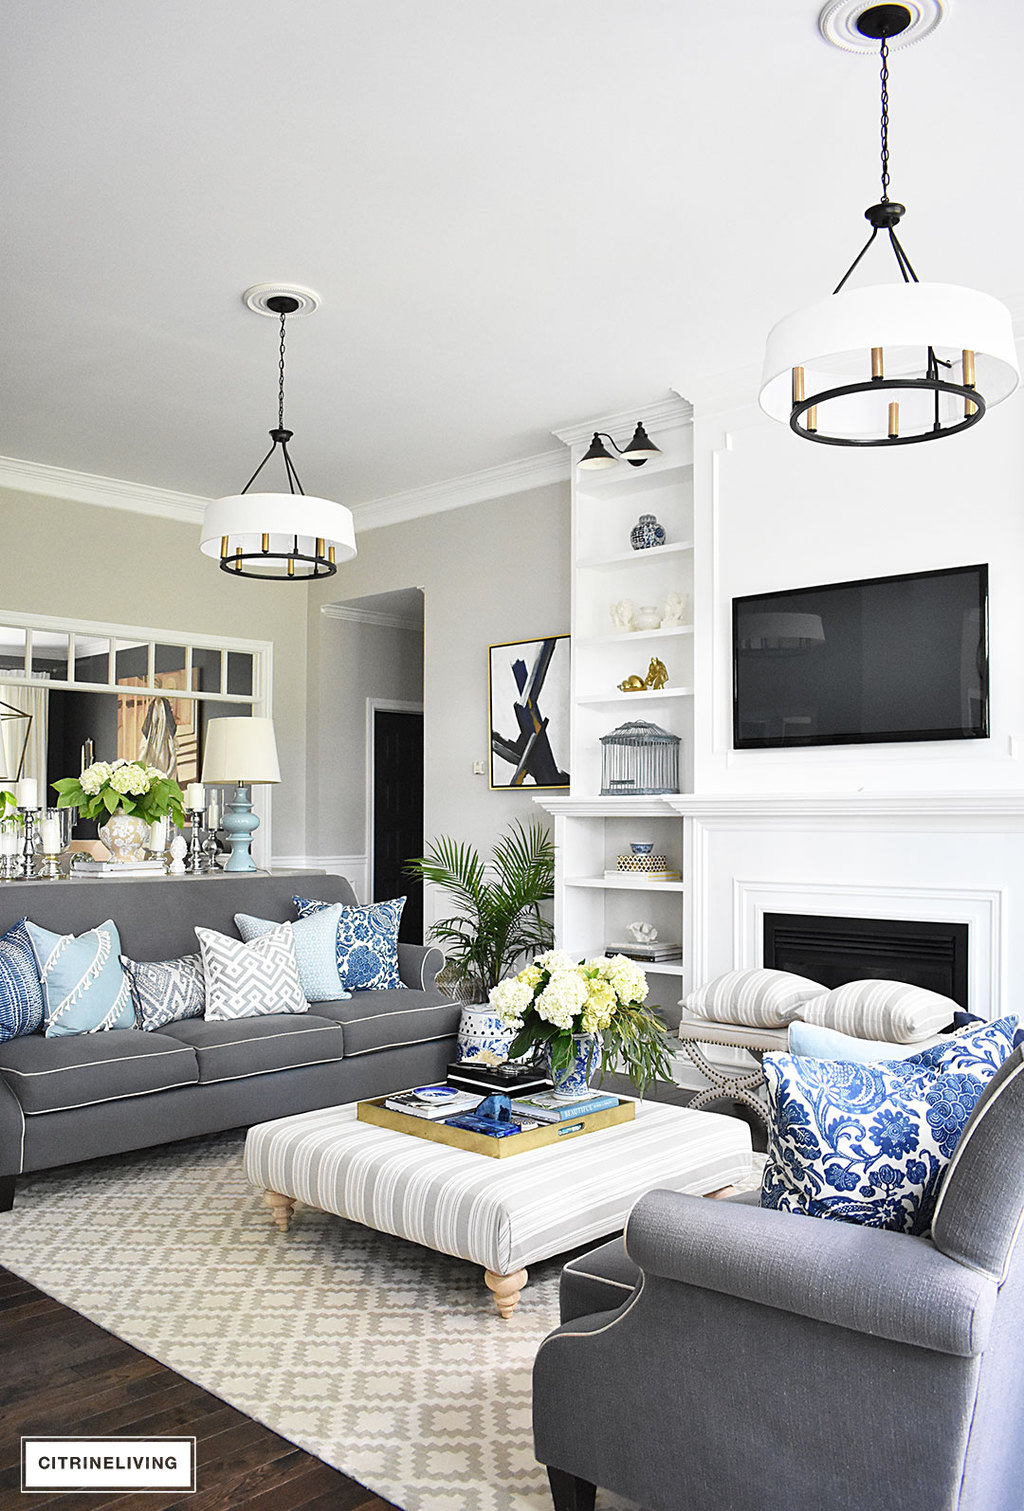 Grey Wall Living Room Design: 7 DESIGN CHOICES WE MADE BUILDING OUR HOME